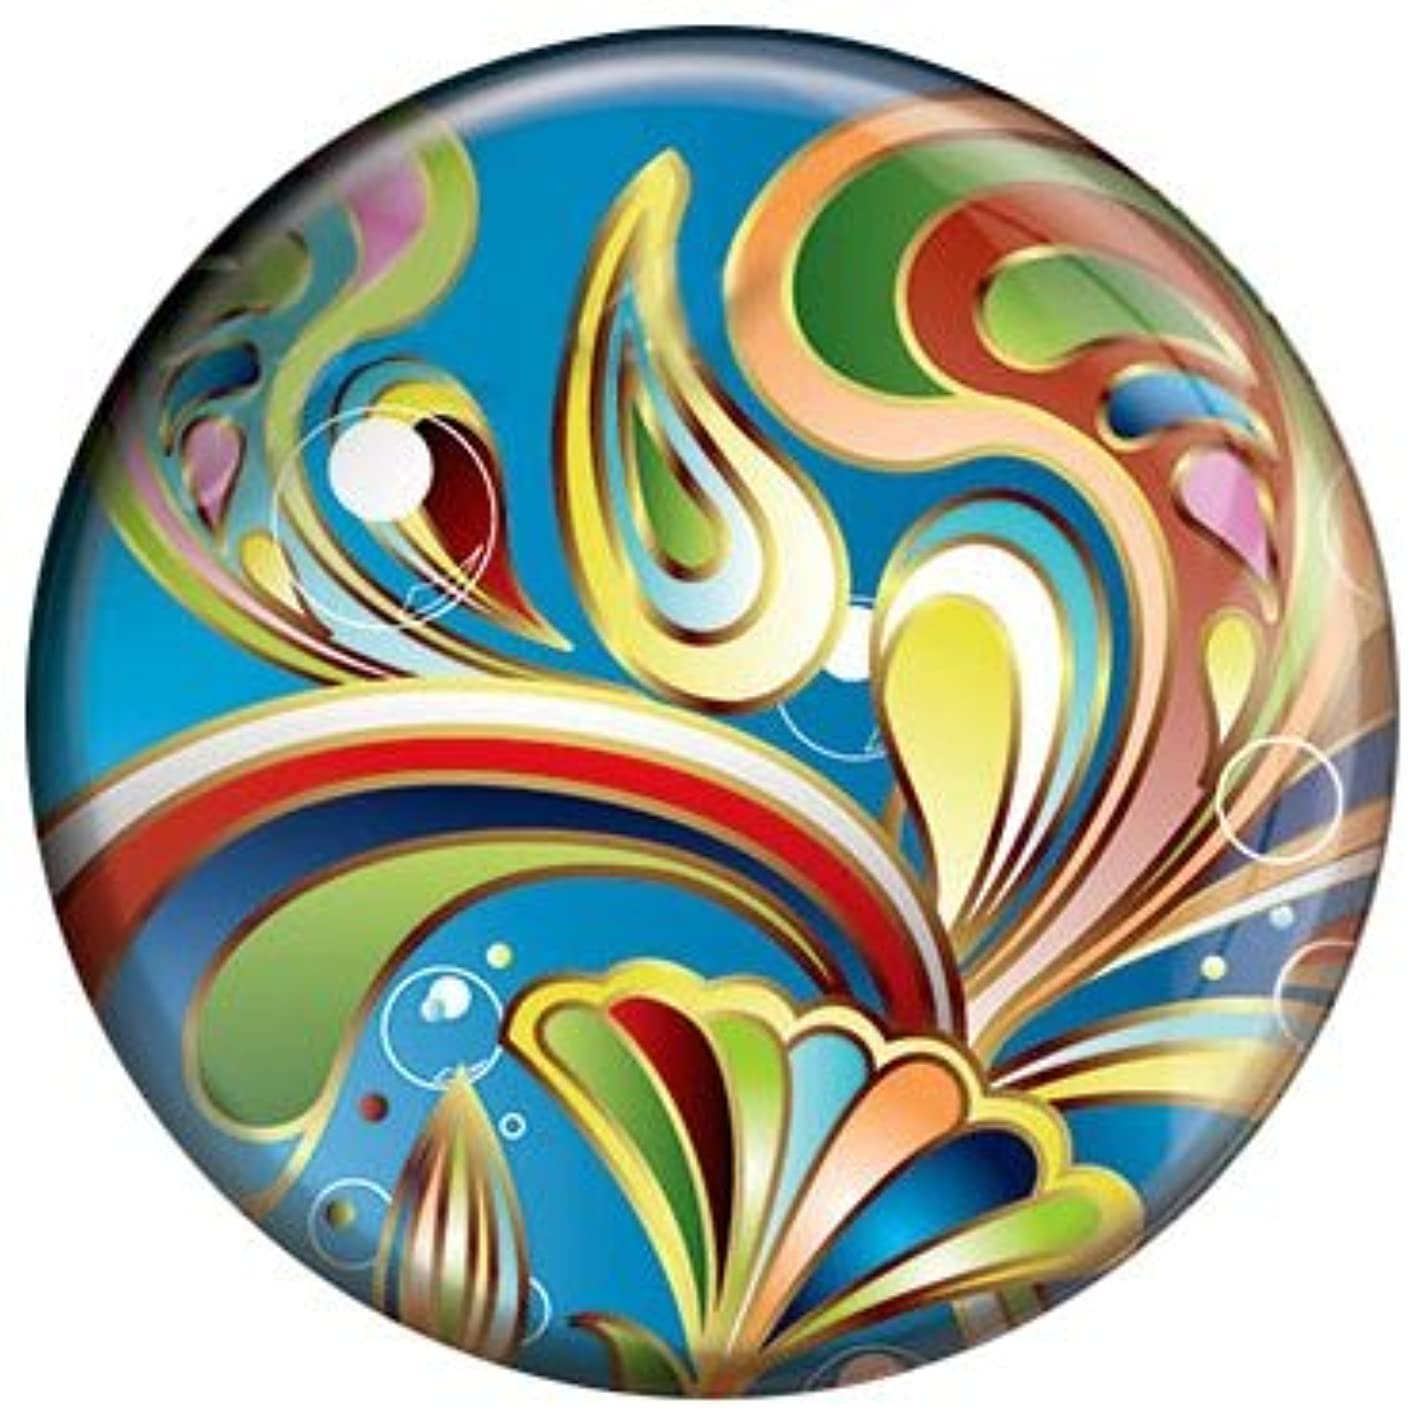 Snap Charm Colorful Painted Enamel Pattern 20mm 3/4